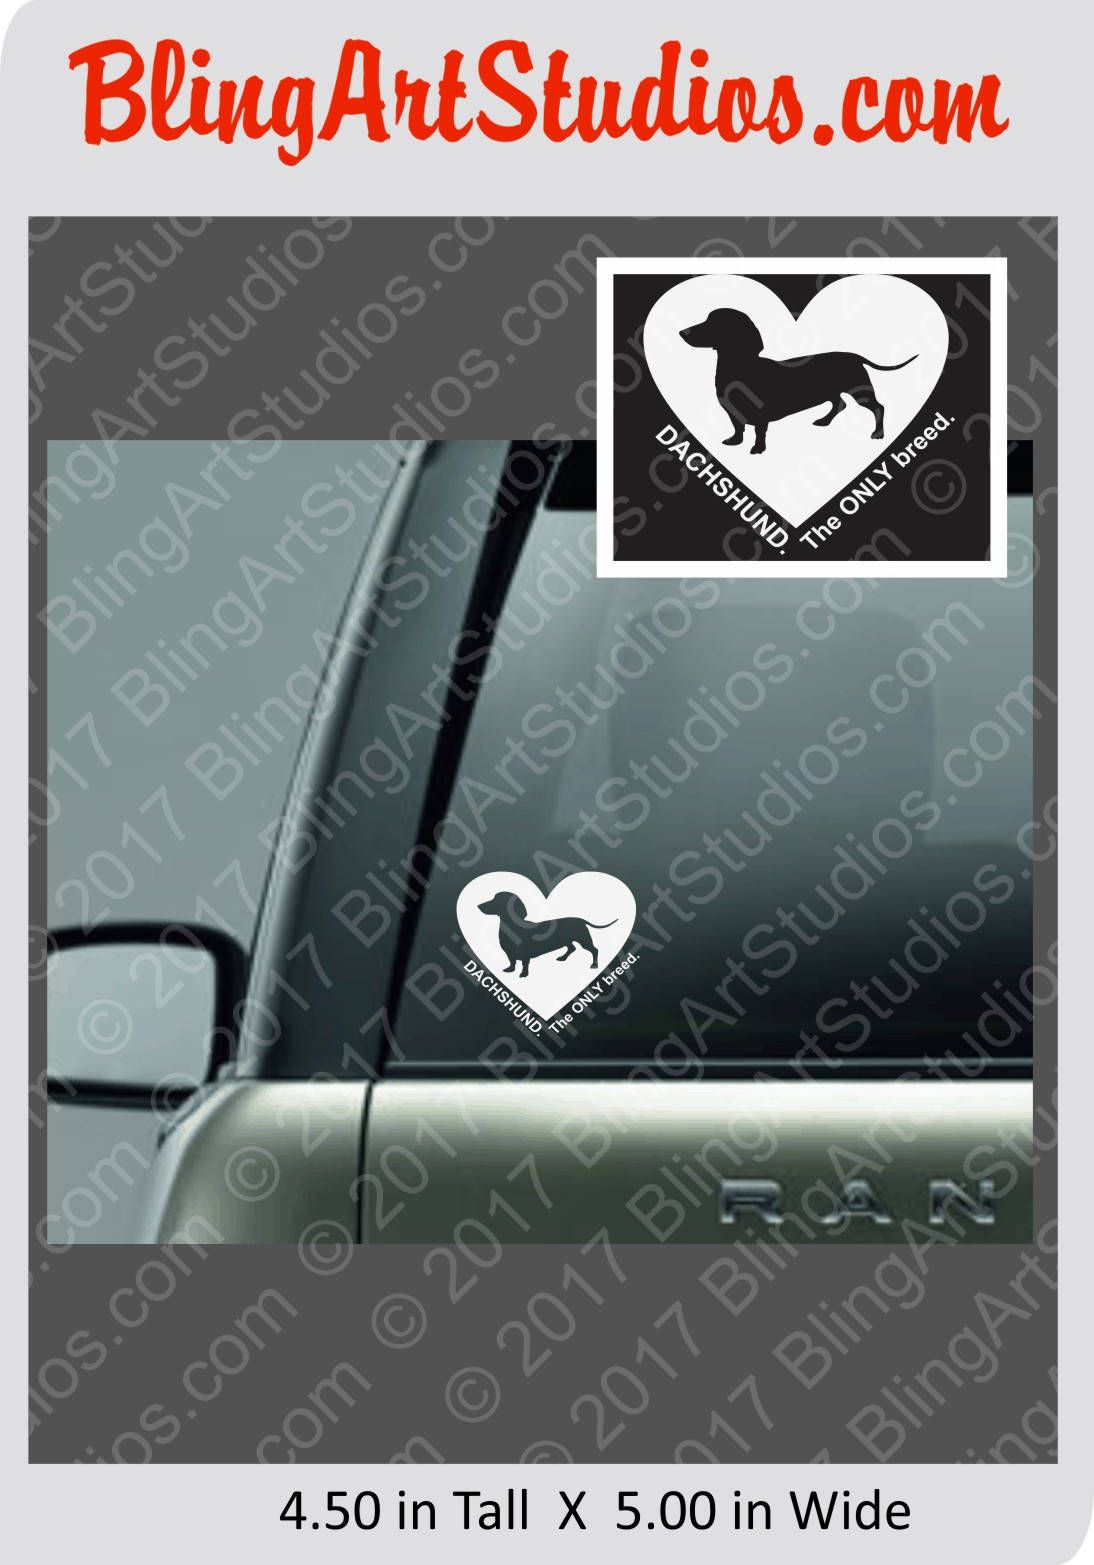 Vinyl Decal Vinyl Dachshund Decal Dachshund Sticker Vinyl Dog Decal Dachshund Vinyl Car Sticker Dachshund Br Vinyl Decals Vinyl Car Stickers Vinyl Sticker